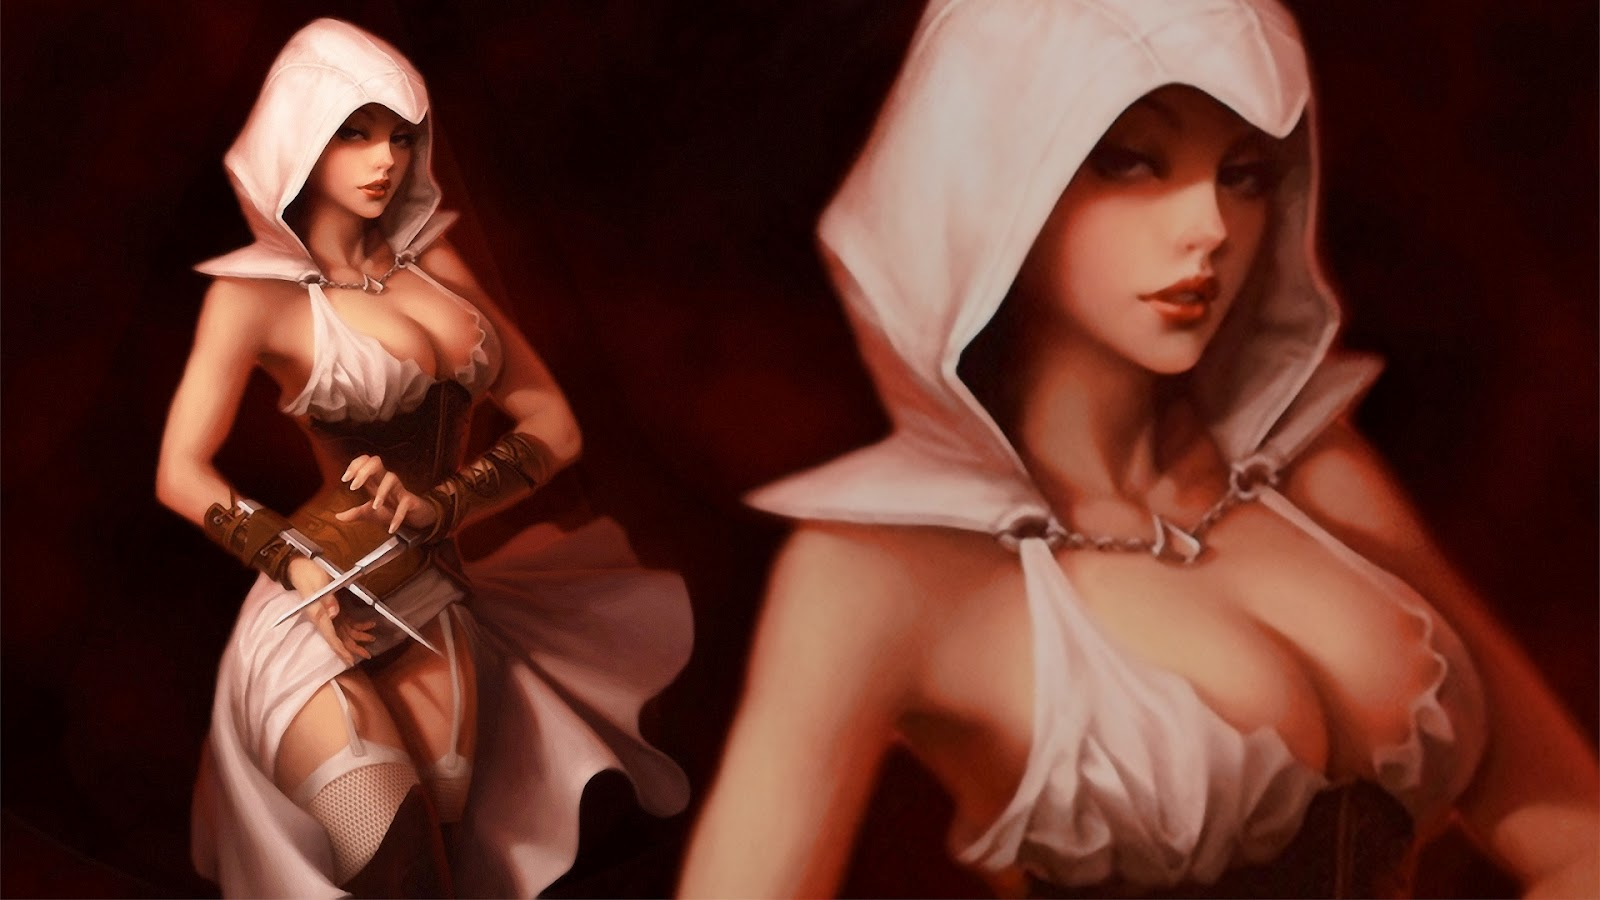 Nude patch assassin's creed adult images